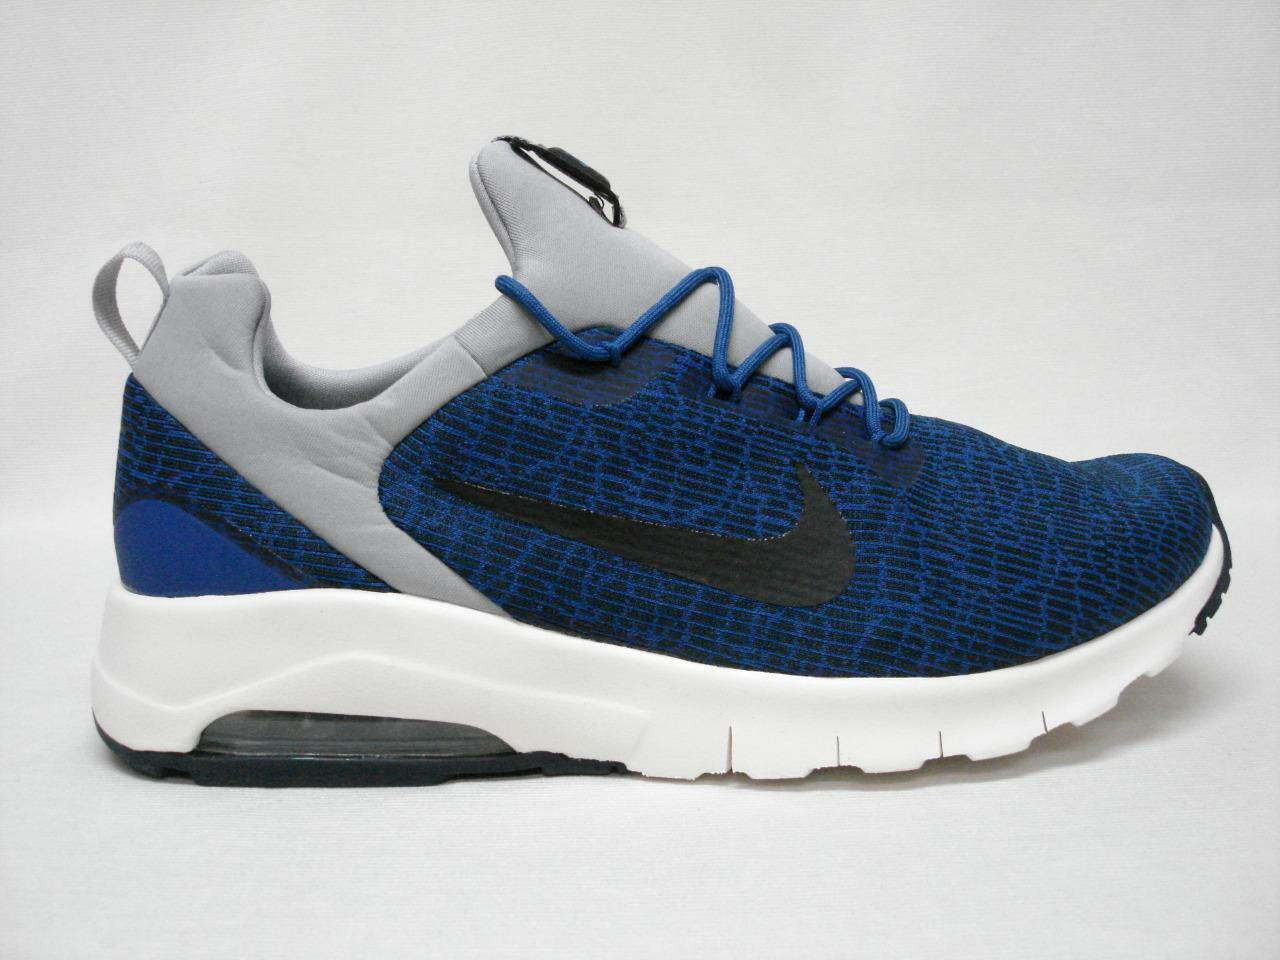 NIB NIKE AIR MAX MOTION RACER MEN'S SHOE'S 8.5 BLUE/BLACK~AWESOME LOOKING SHOE'S